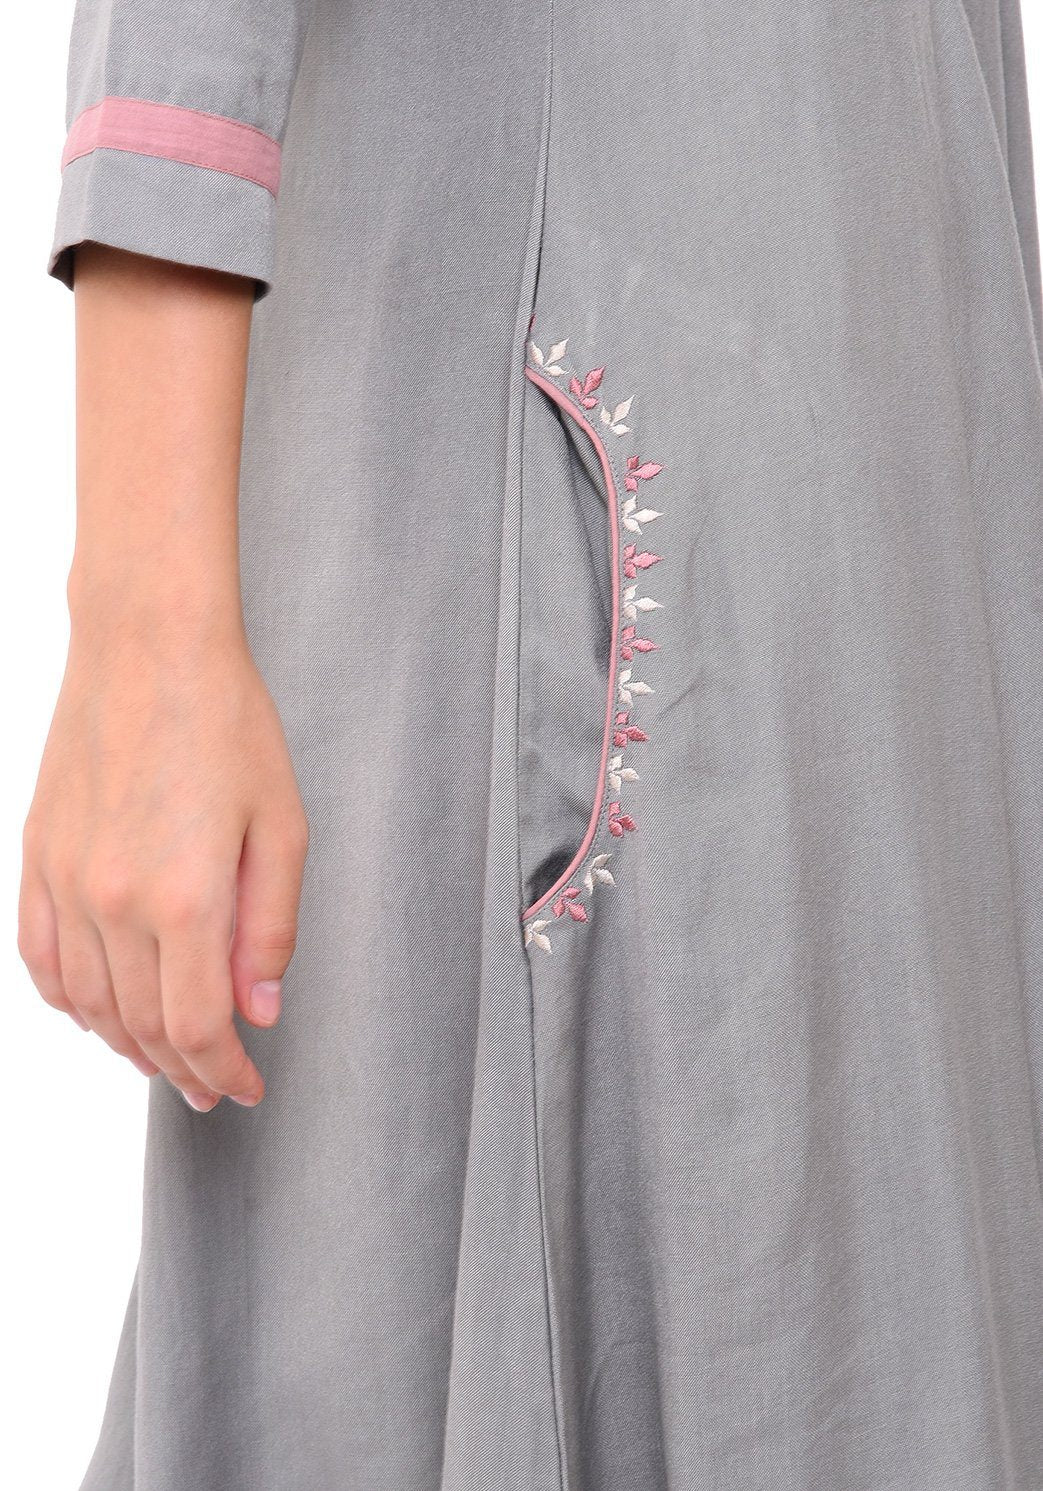 Pocket Embroidered Shift Dress - Grey Dress VRITTA